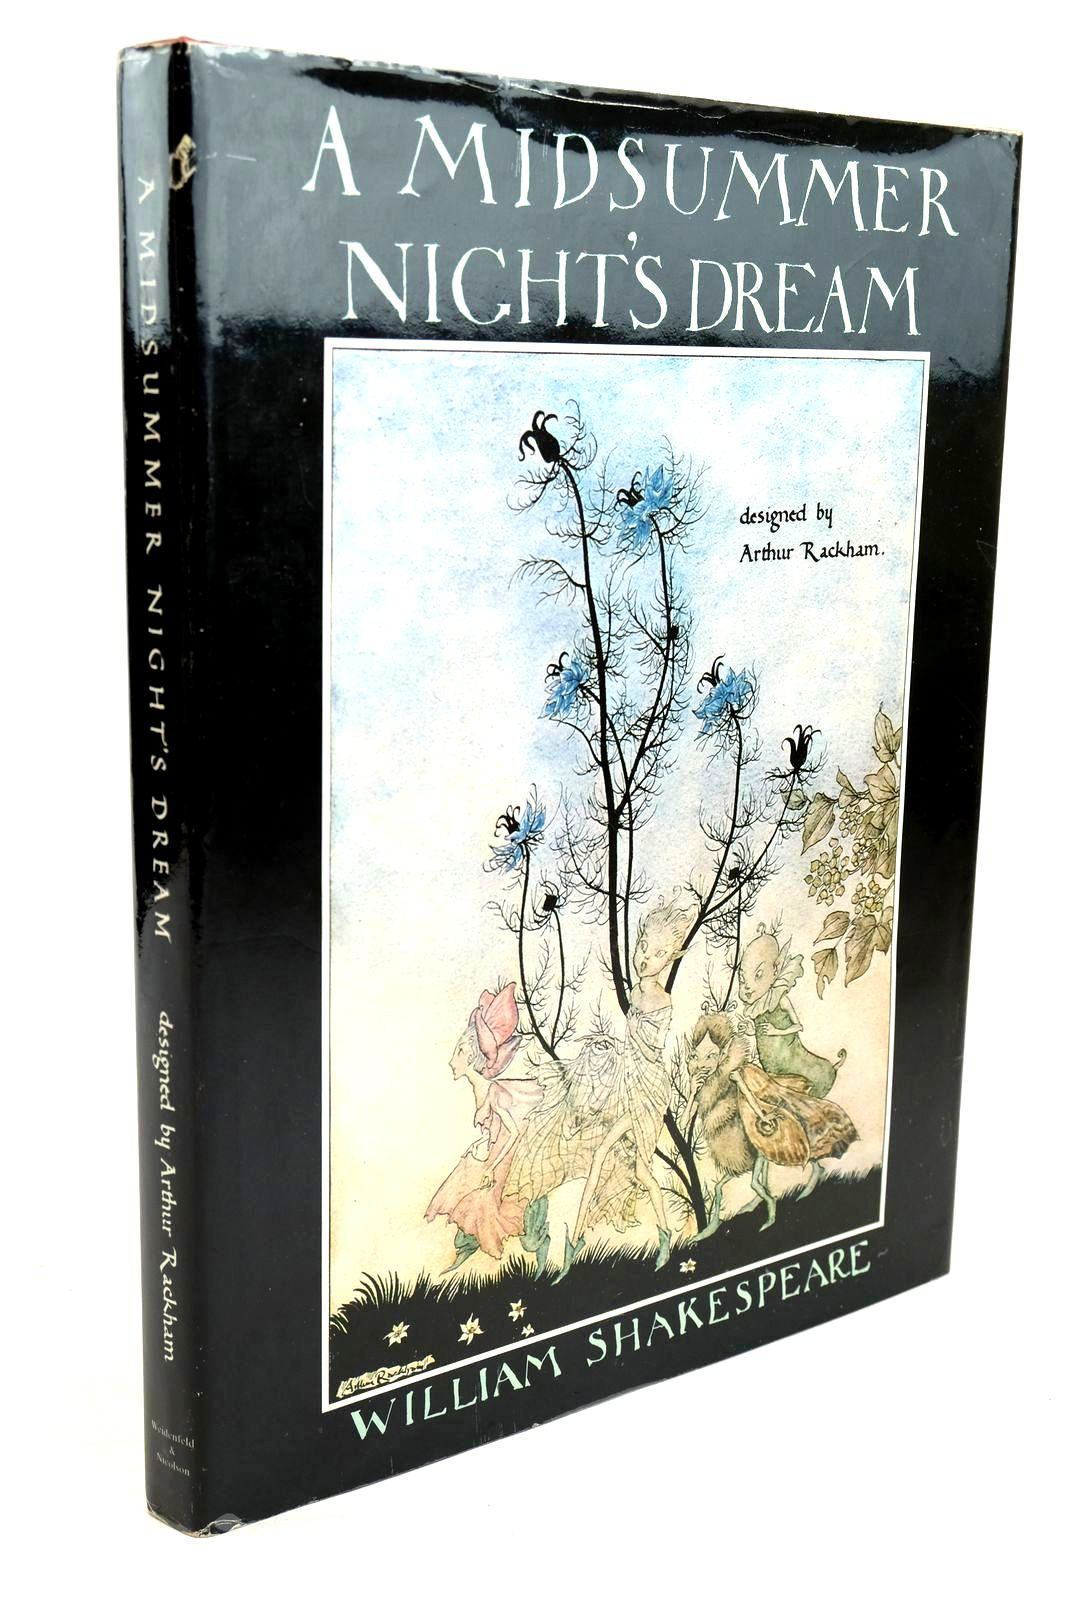 Photo of A MIDSUMMER NIGHT'S DREAM written by Shakespeare, William illustrated by Rackham, Arthur Hewitt, Graily published by Weidenfeld and Nicolson (STOCK CODE: 1320486)  for sale by Stella & Rose's Books